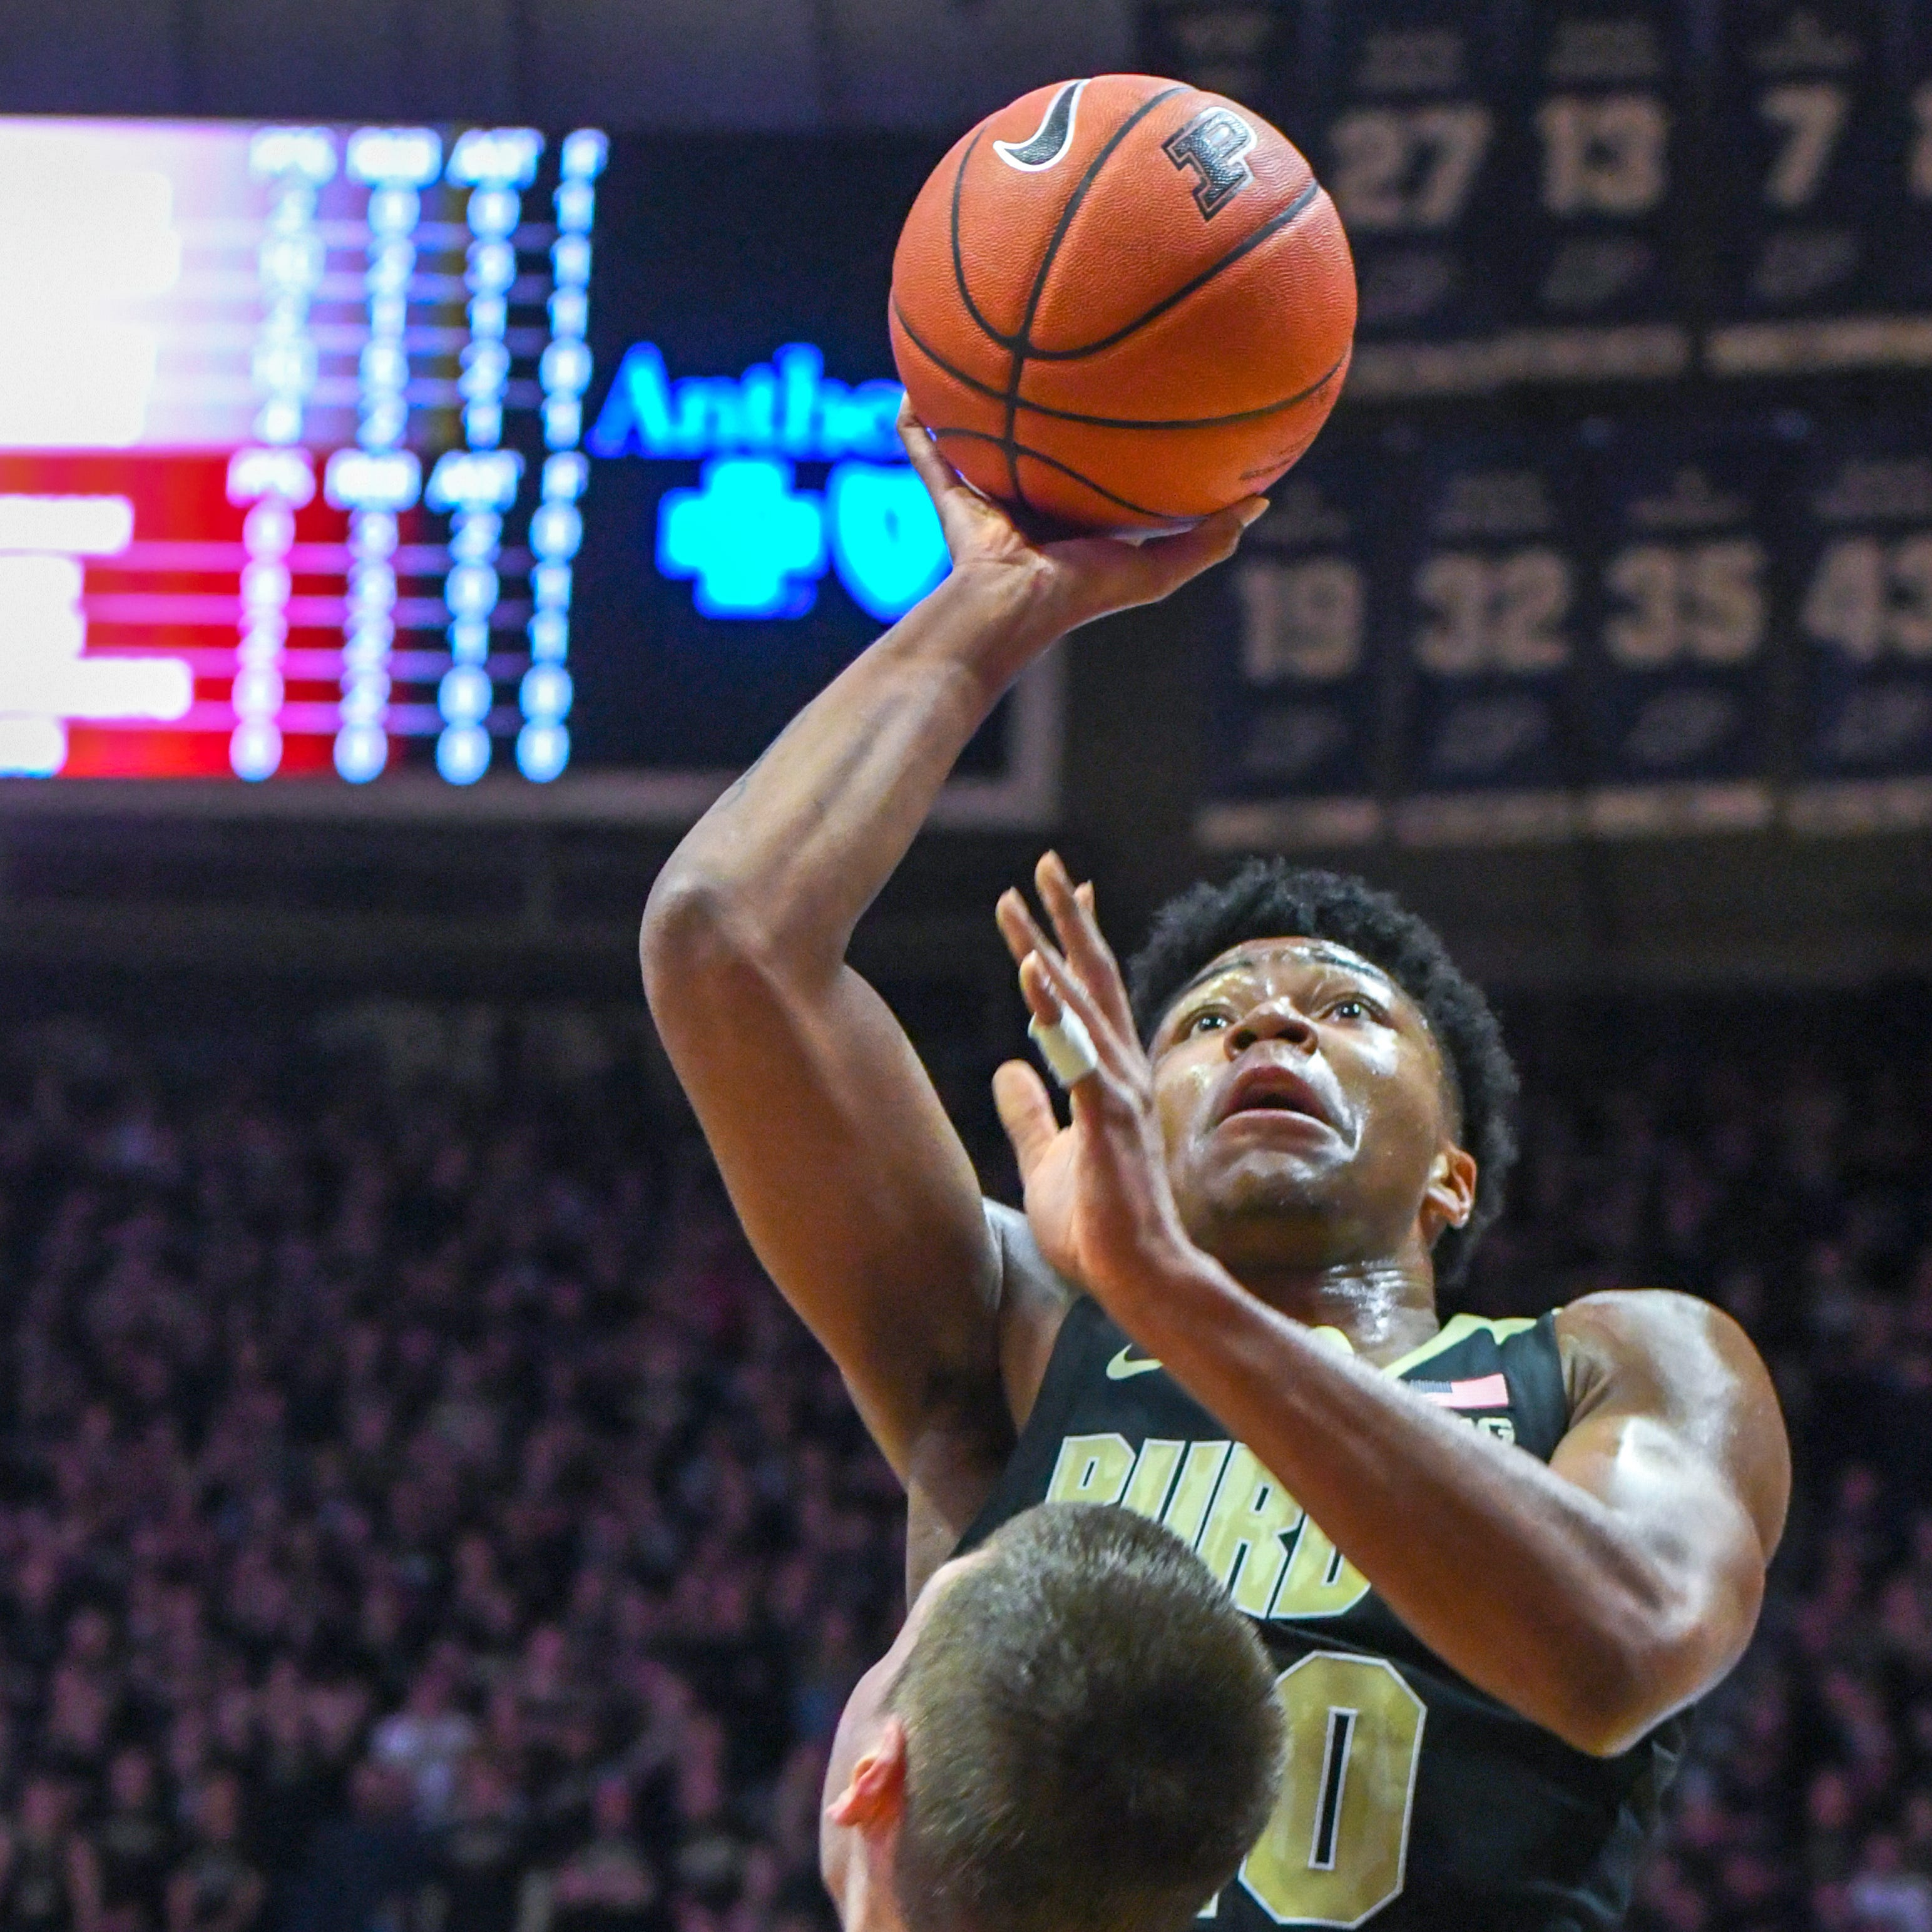 In every facet, Nojel Eastern sparked Purdue basketball's victory over No. 25 Indiana